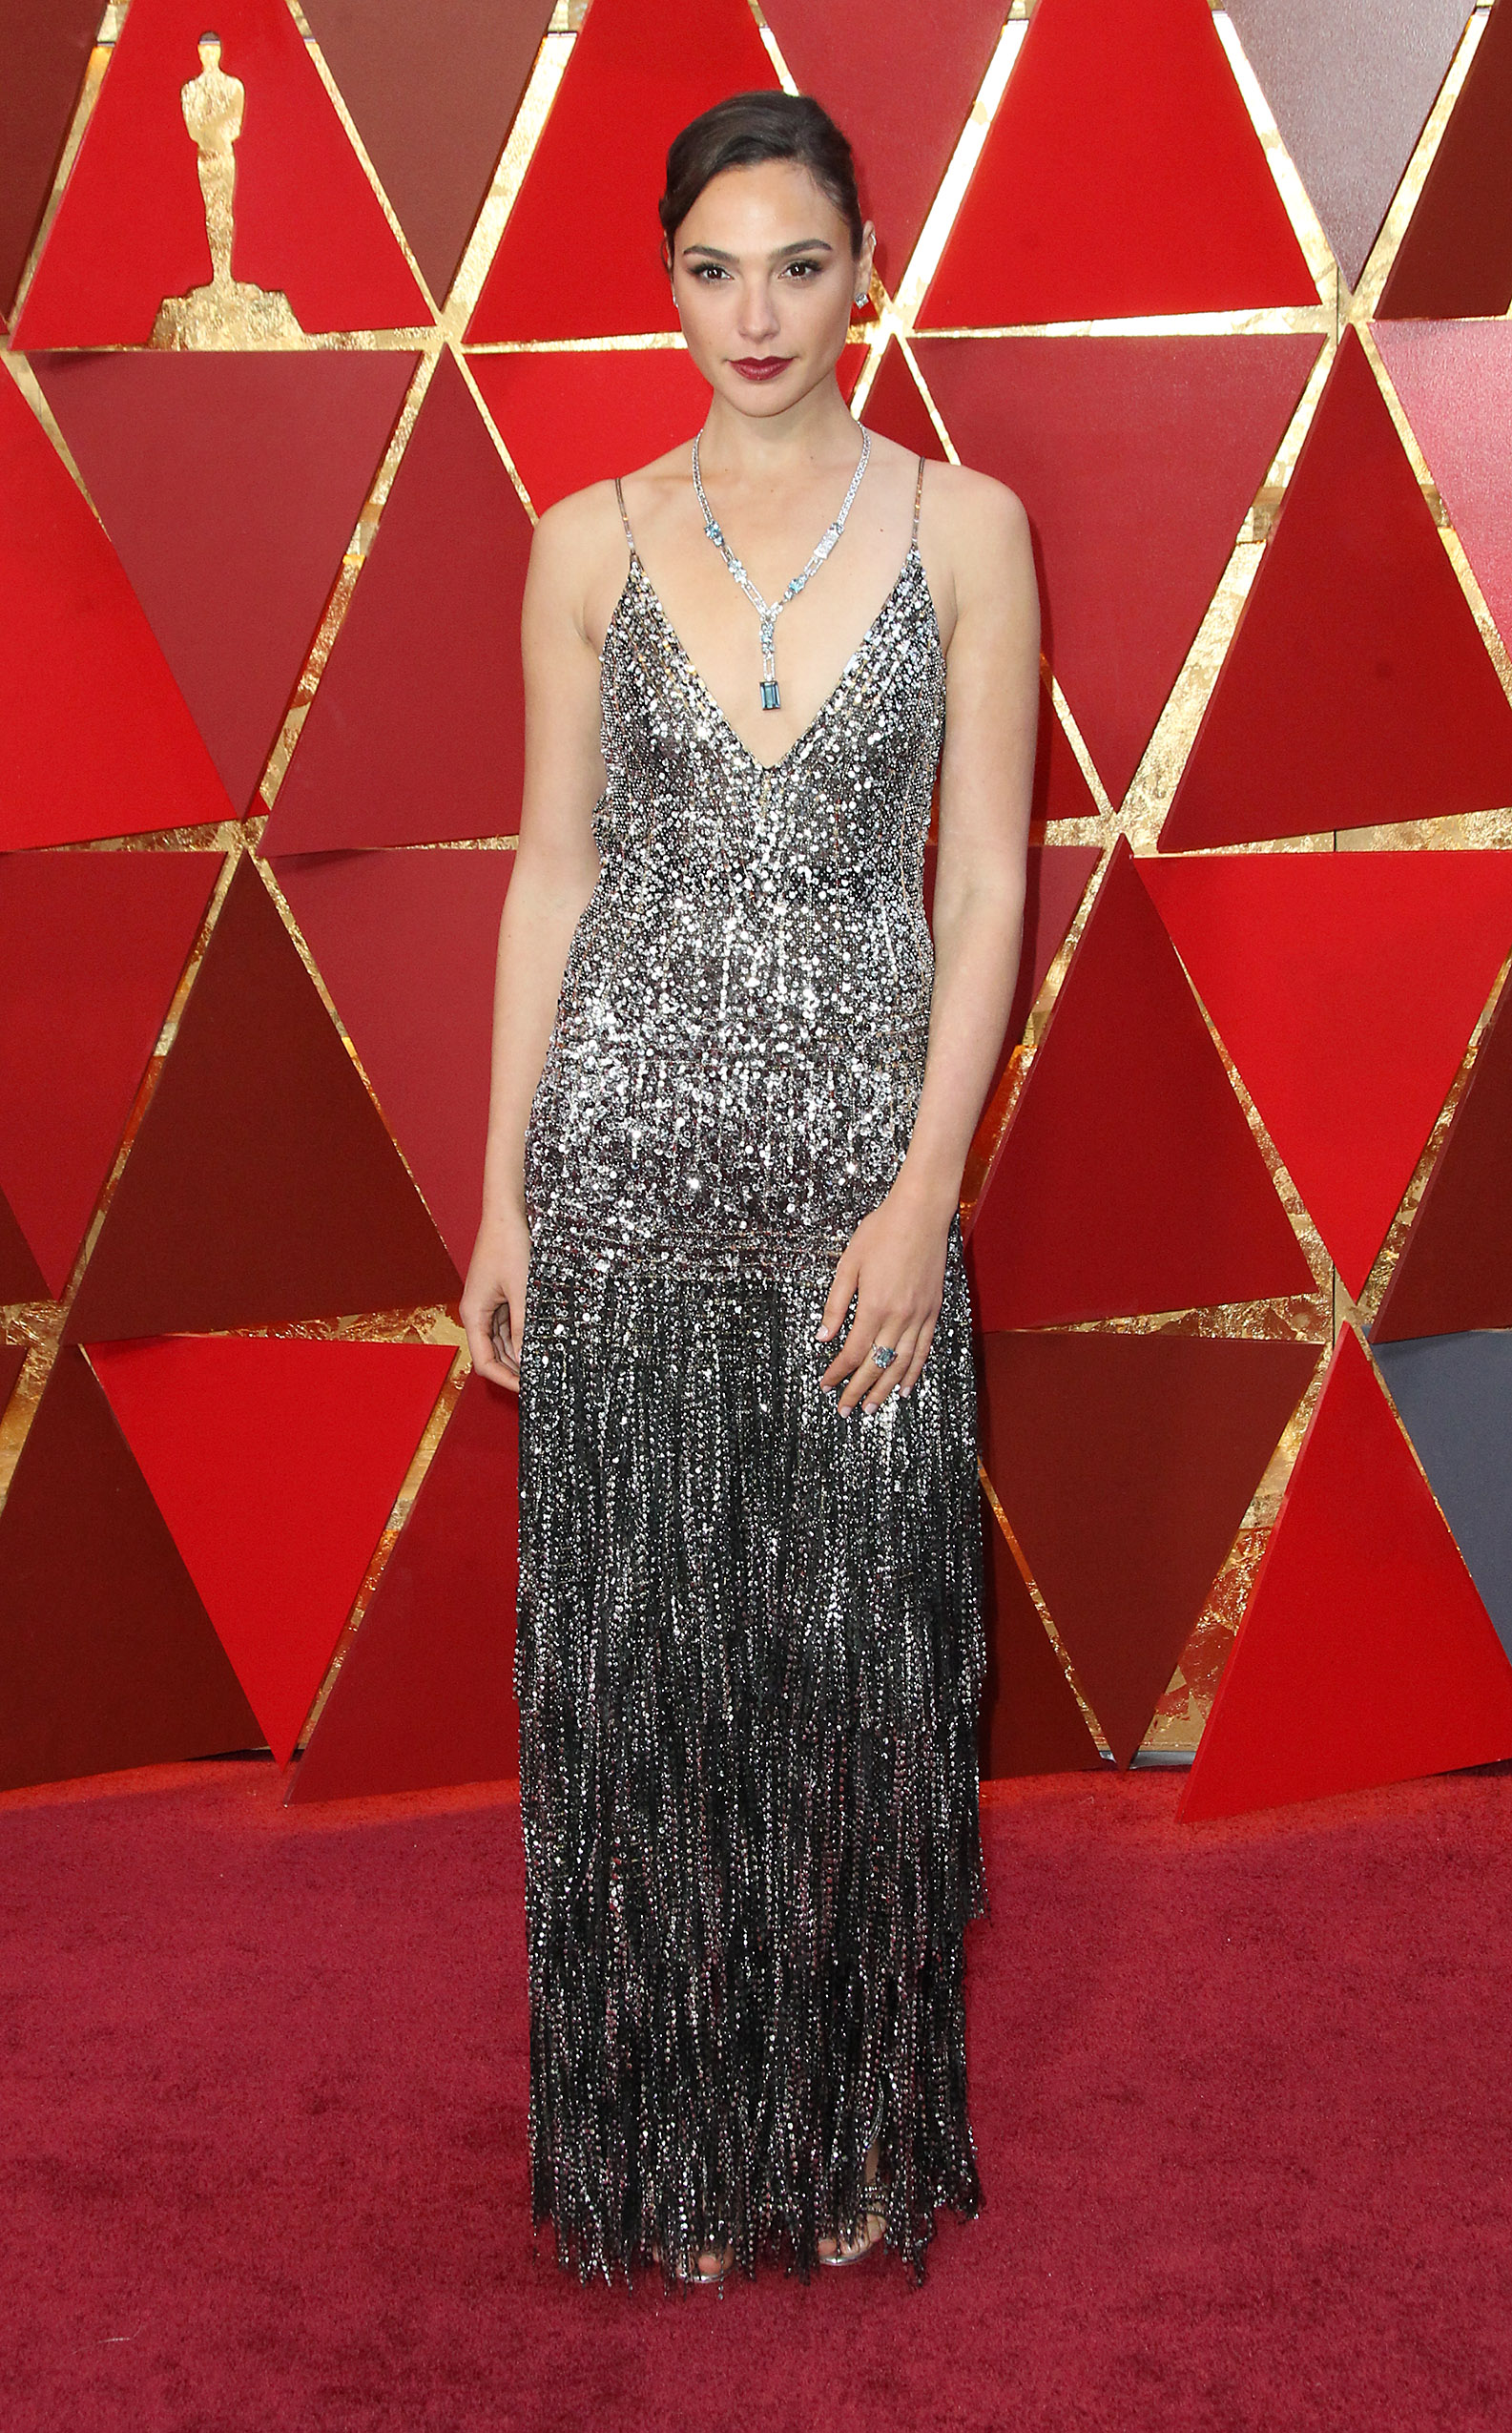 Gal Gadot{&nbsp;}arrives at the 90th Annual Academy Awards (Oscars) held at the Dolby Theater in Hollywood, California. (Image: Adriana M. Barraza/WENN.com)<p></p>